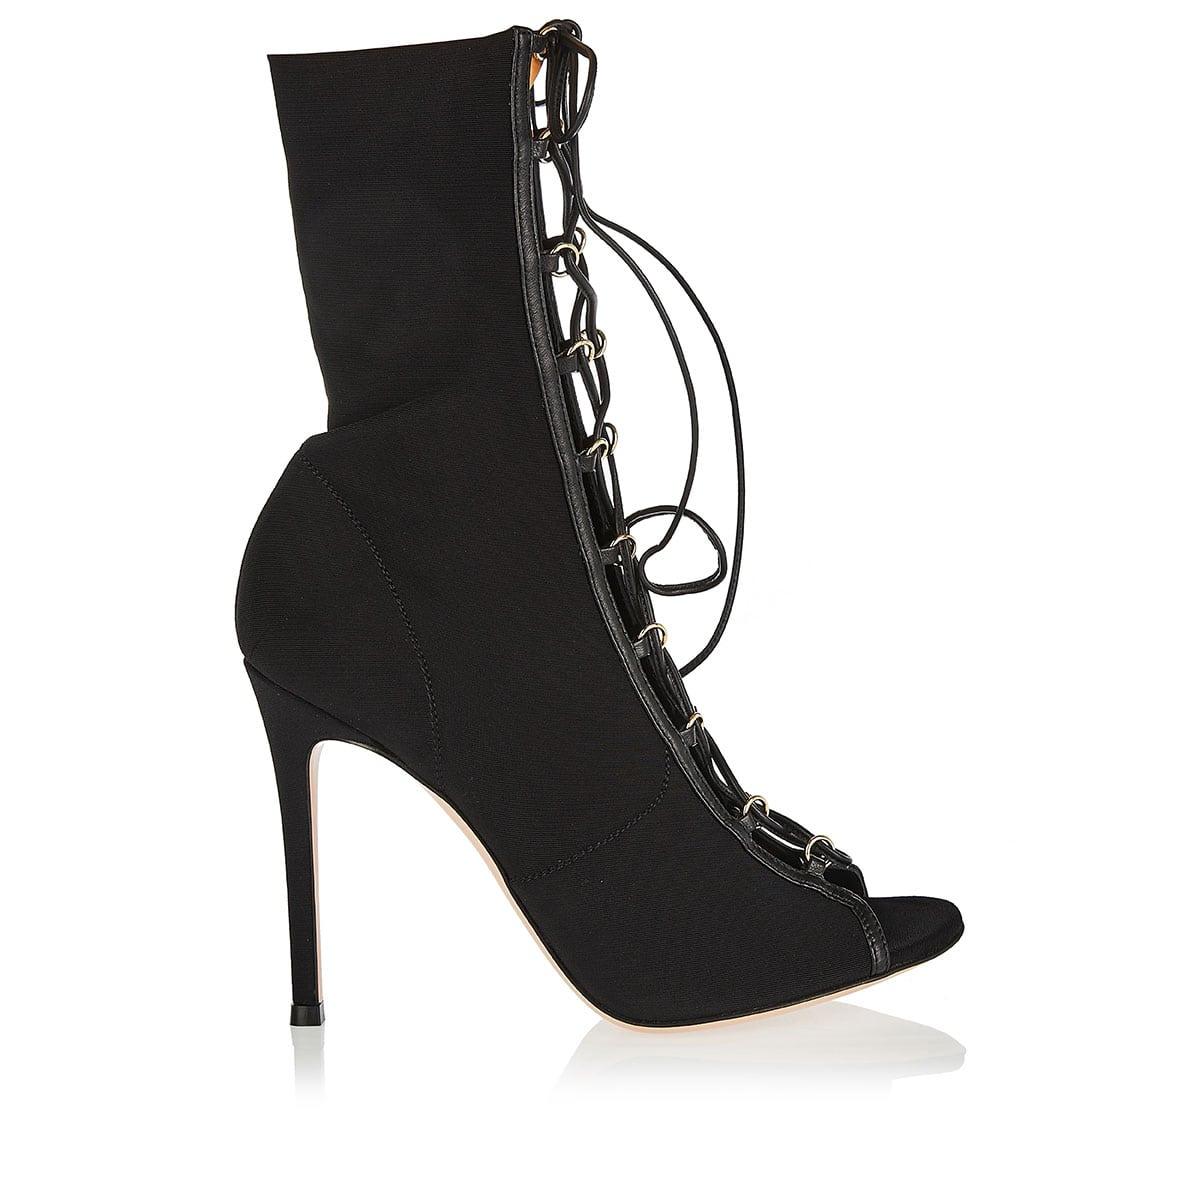 Peep-toe lace-up ankle boots